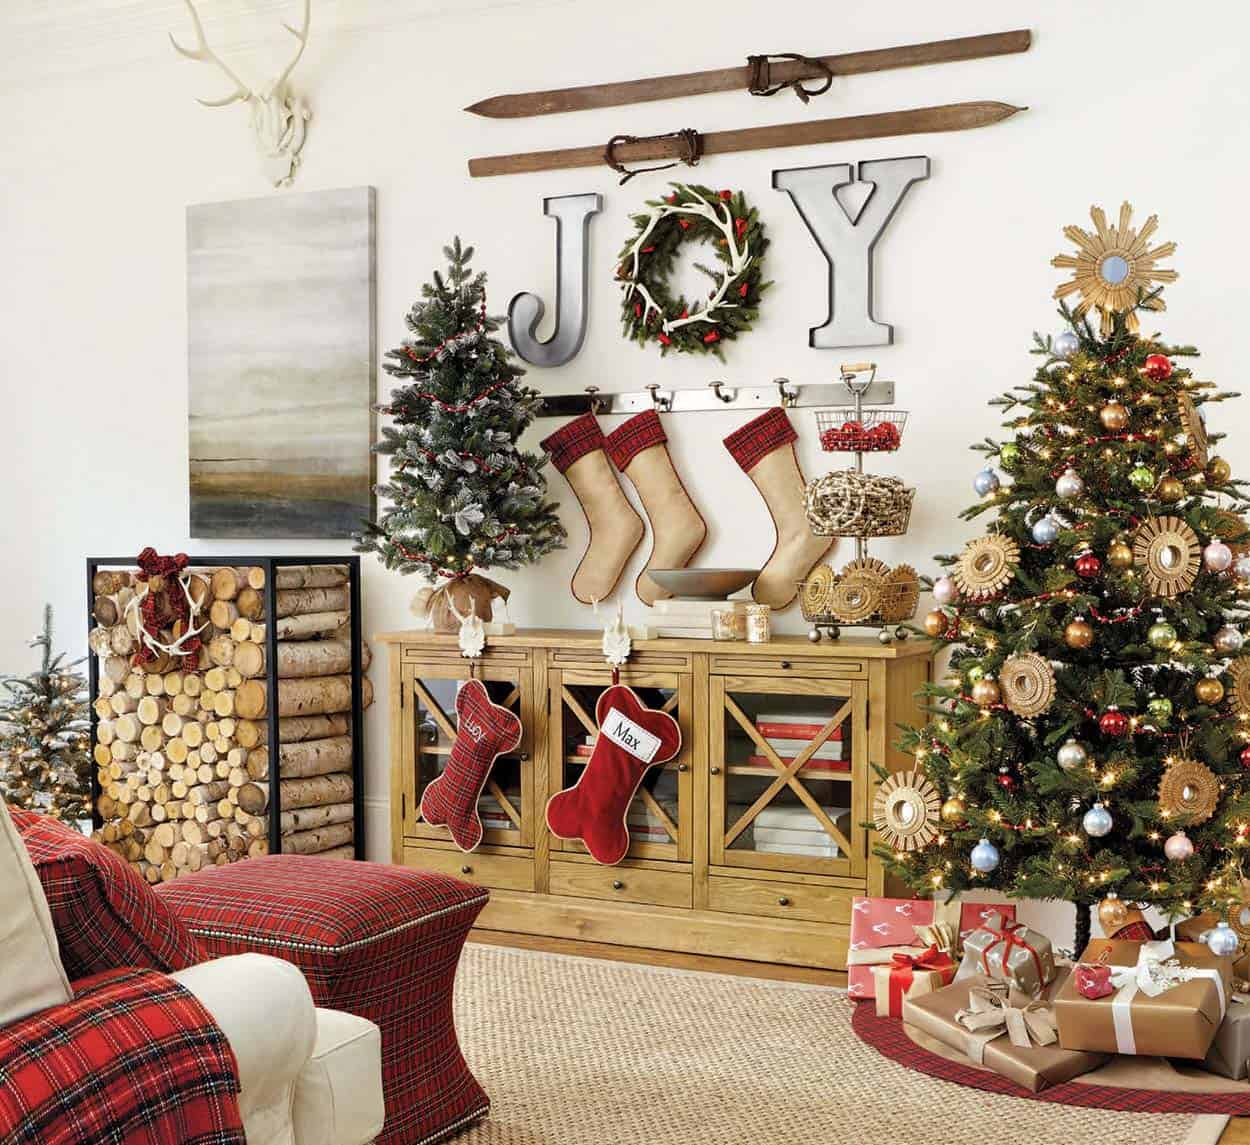 pictures of living room decorated for christmas the best colors 2017 40 fabulous rustic country decorating ideas decor 16 1 kindesign